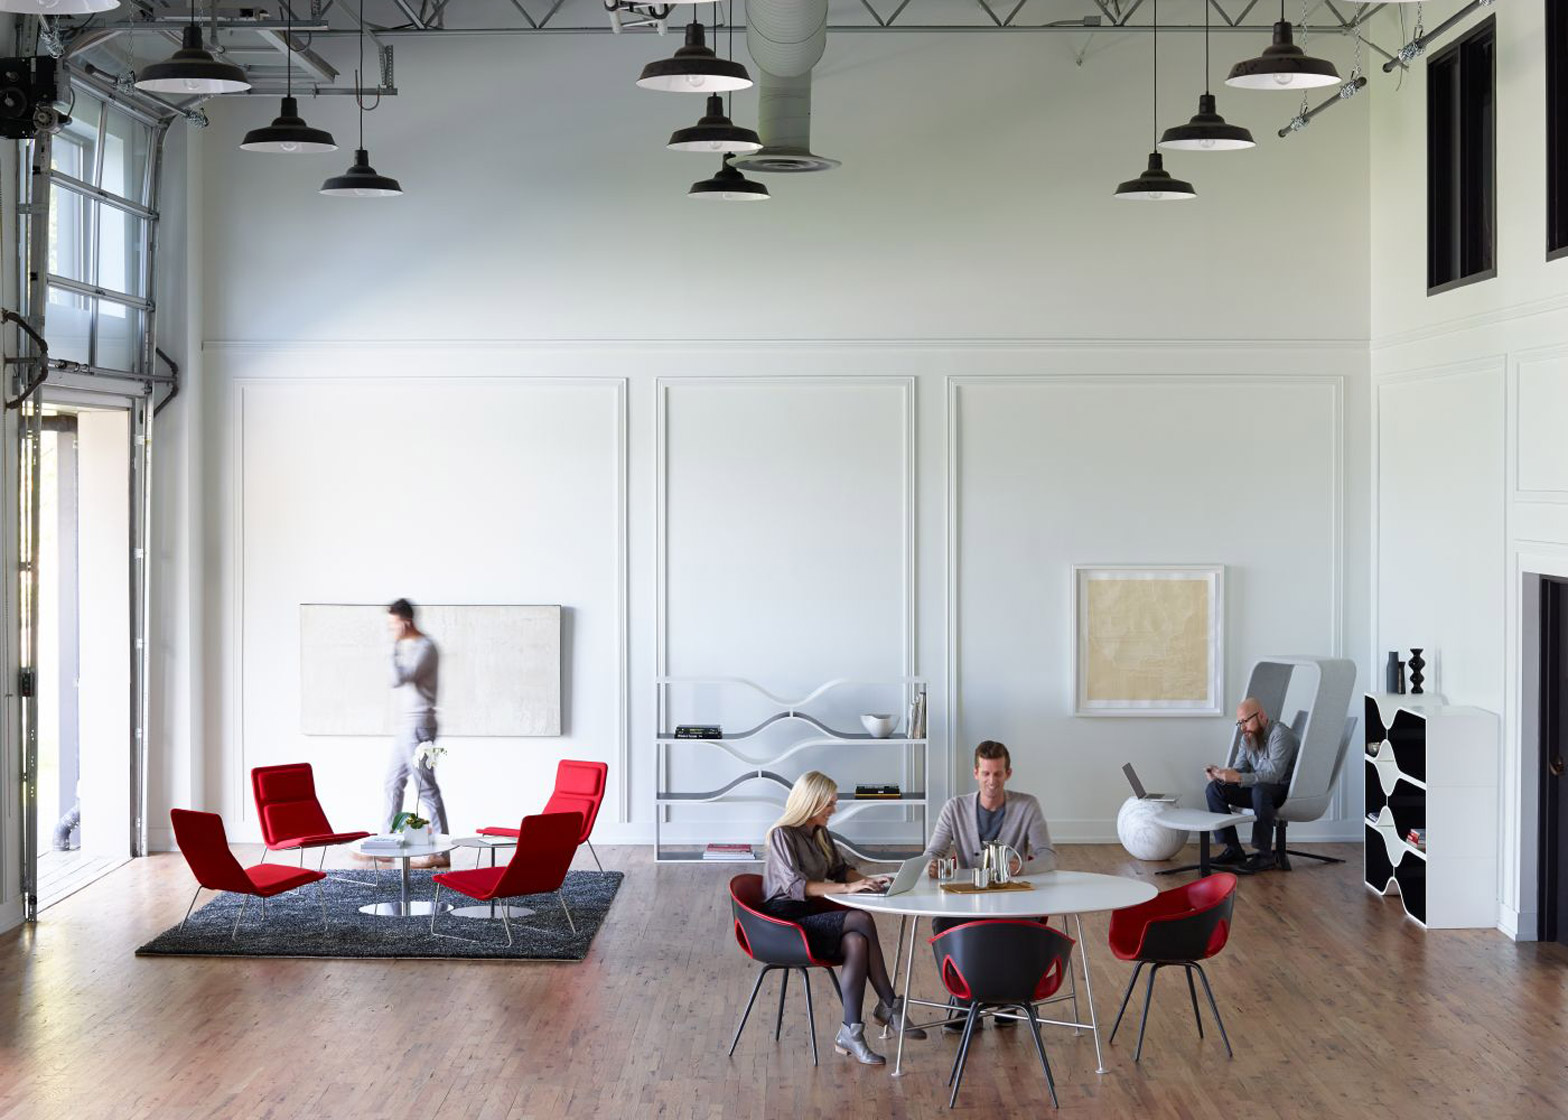 You Need To Design Offices For Next Generation Says Haworth